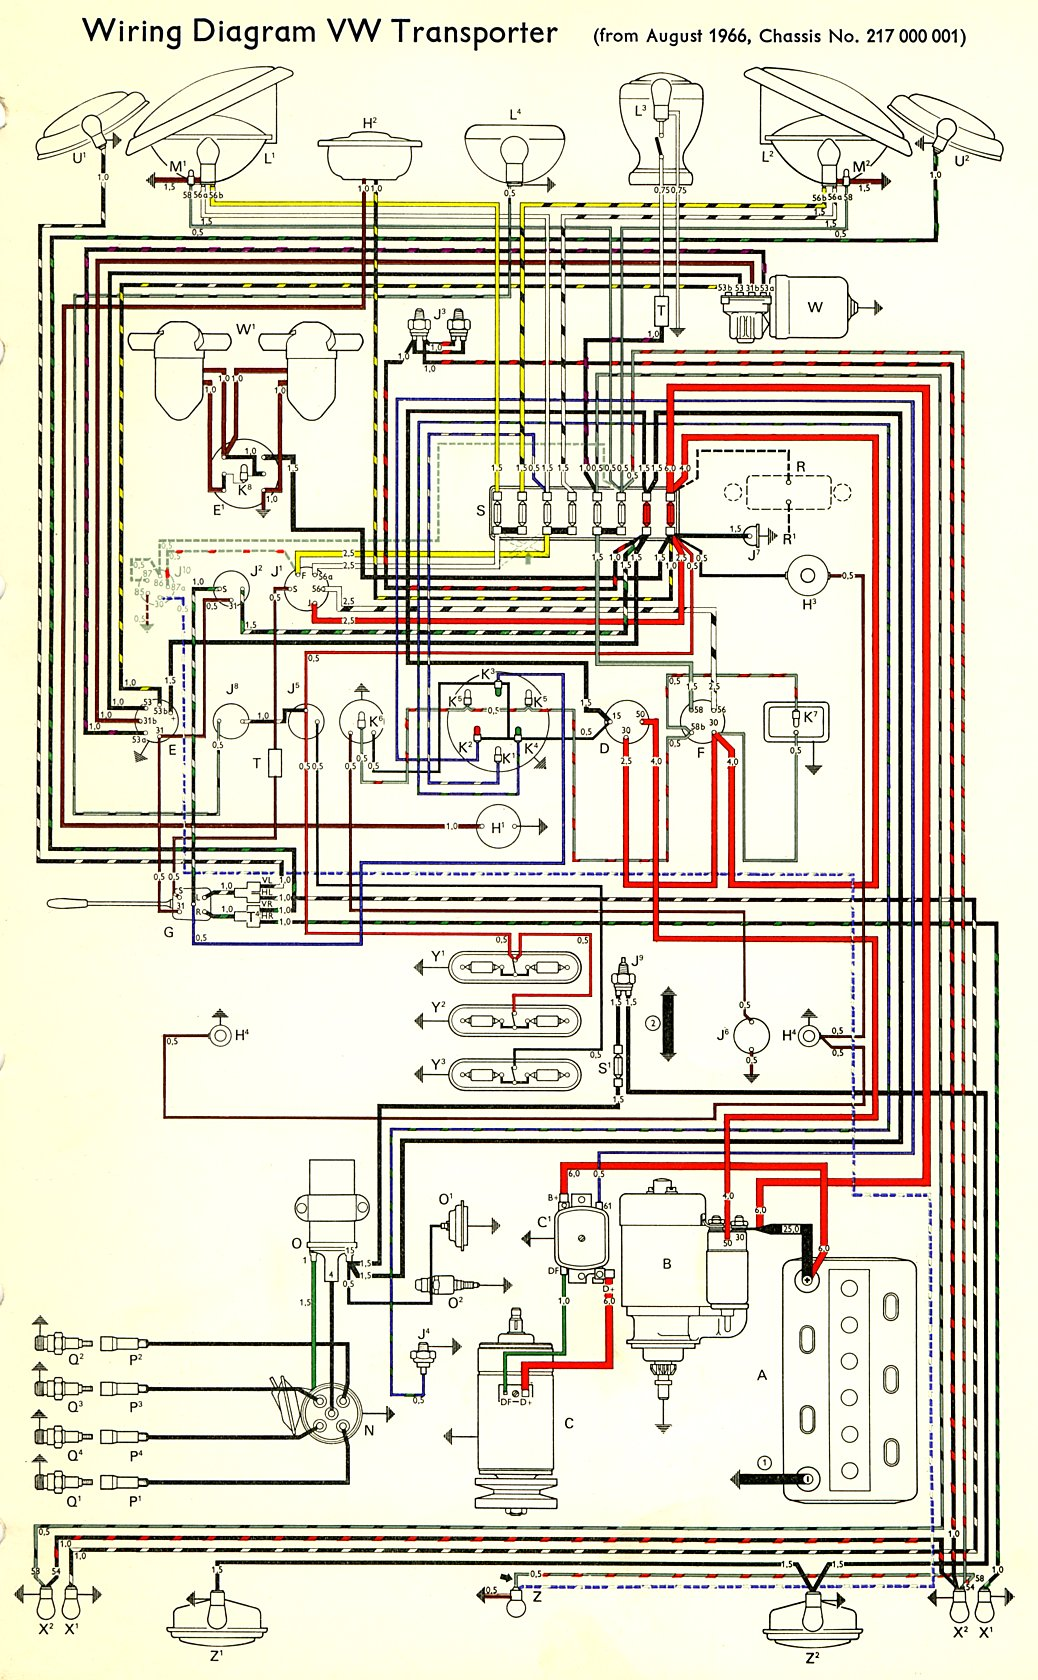 1967 bus wiring diagram thegoldenbug com rh thegoldenbug com 1971 vw bus wiring harness vw bus wiring harness routing